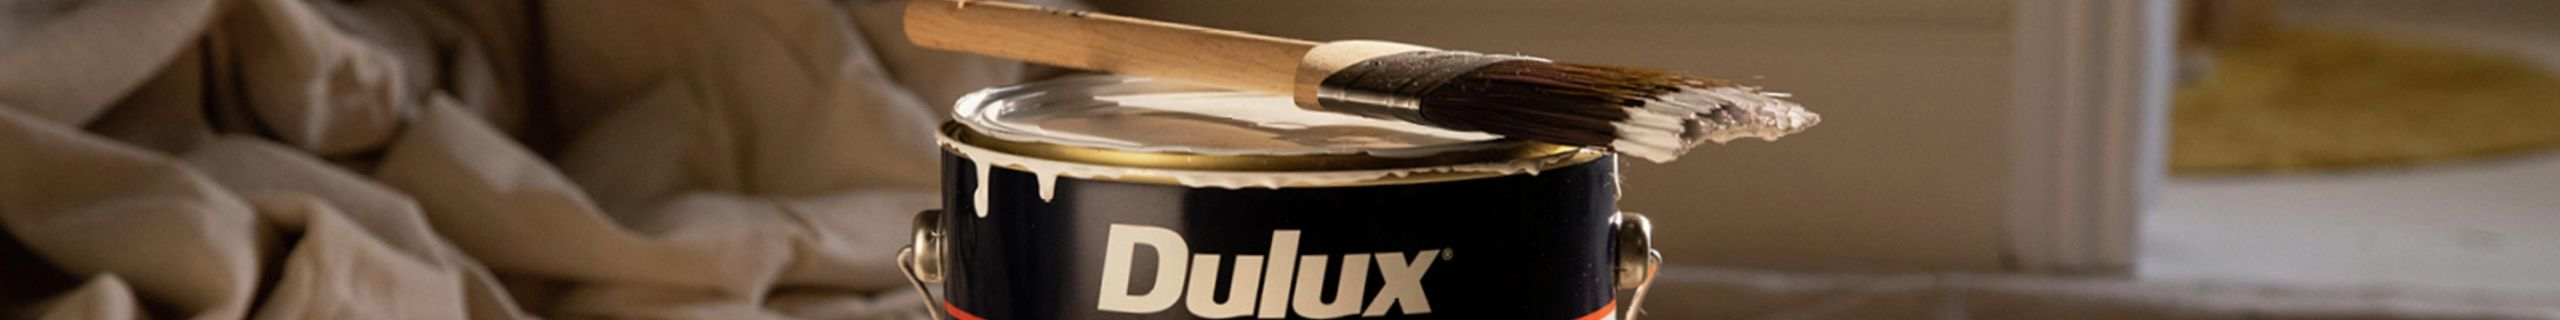 Dulux wash & wear paint with a used paint brush covered in white paint residue sitting atop of the can